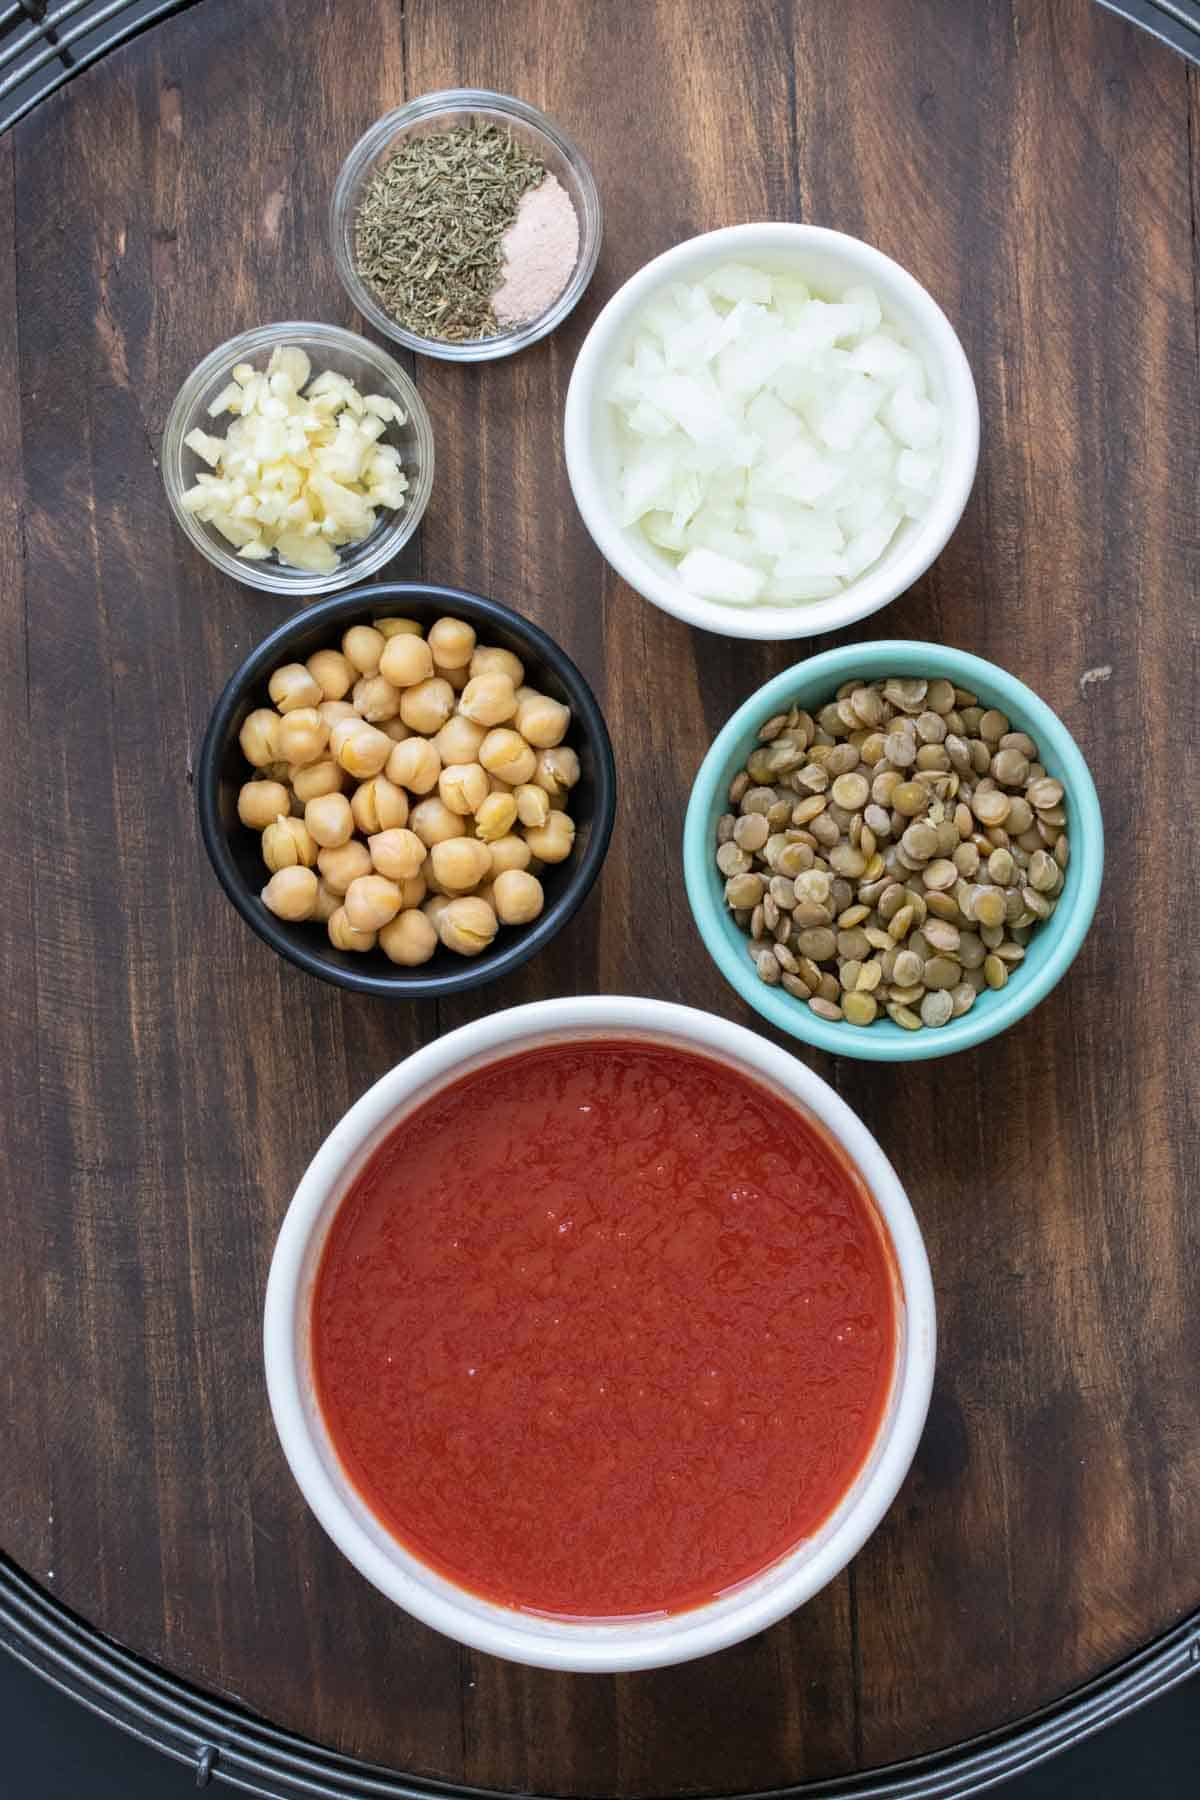 Bowls of ingredients to make bean based bolognese sauce